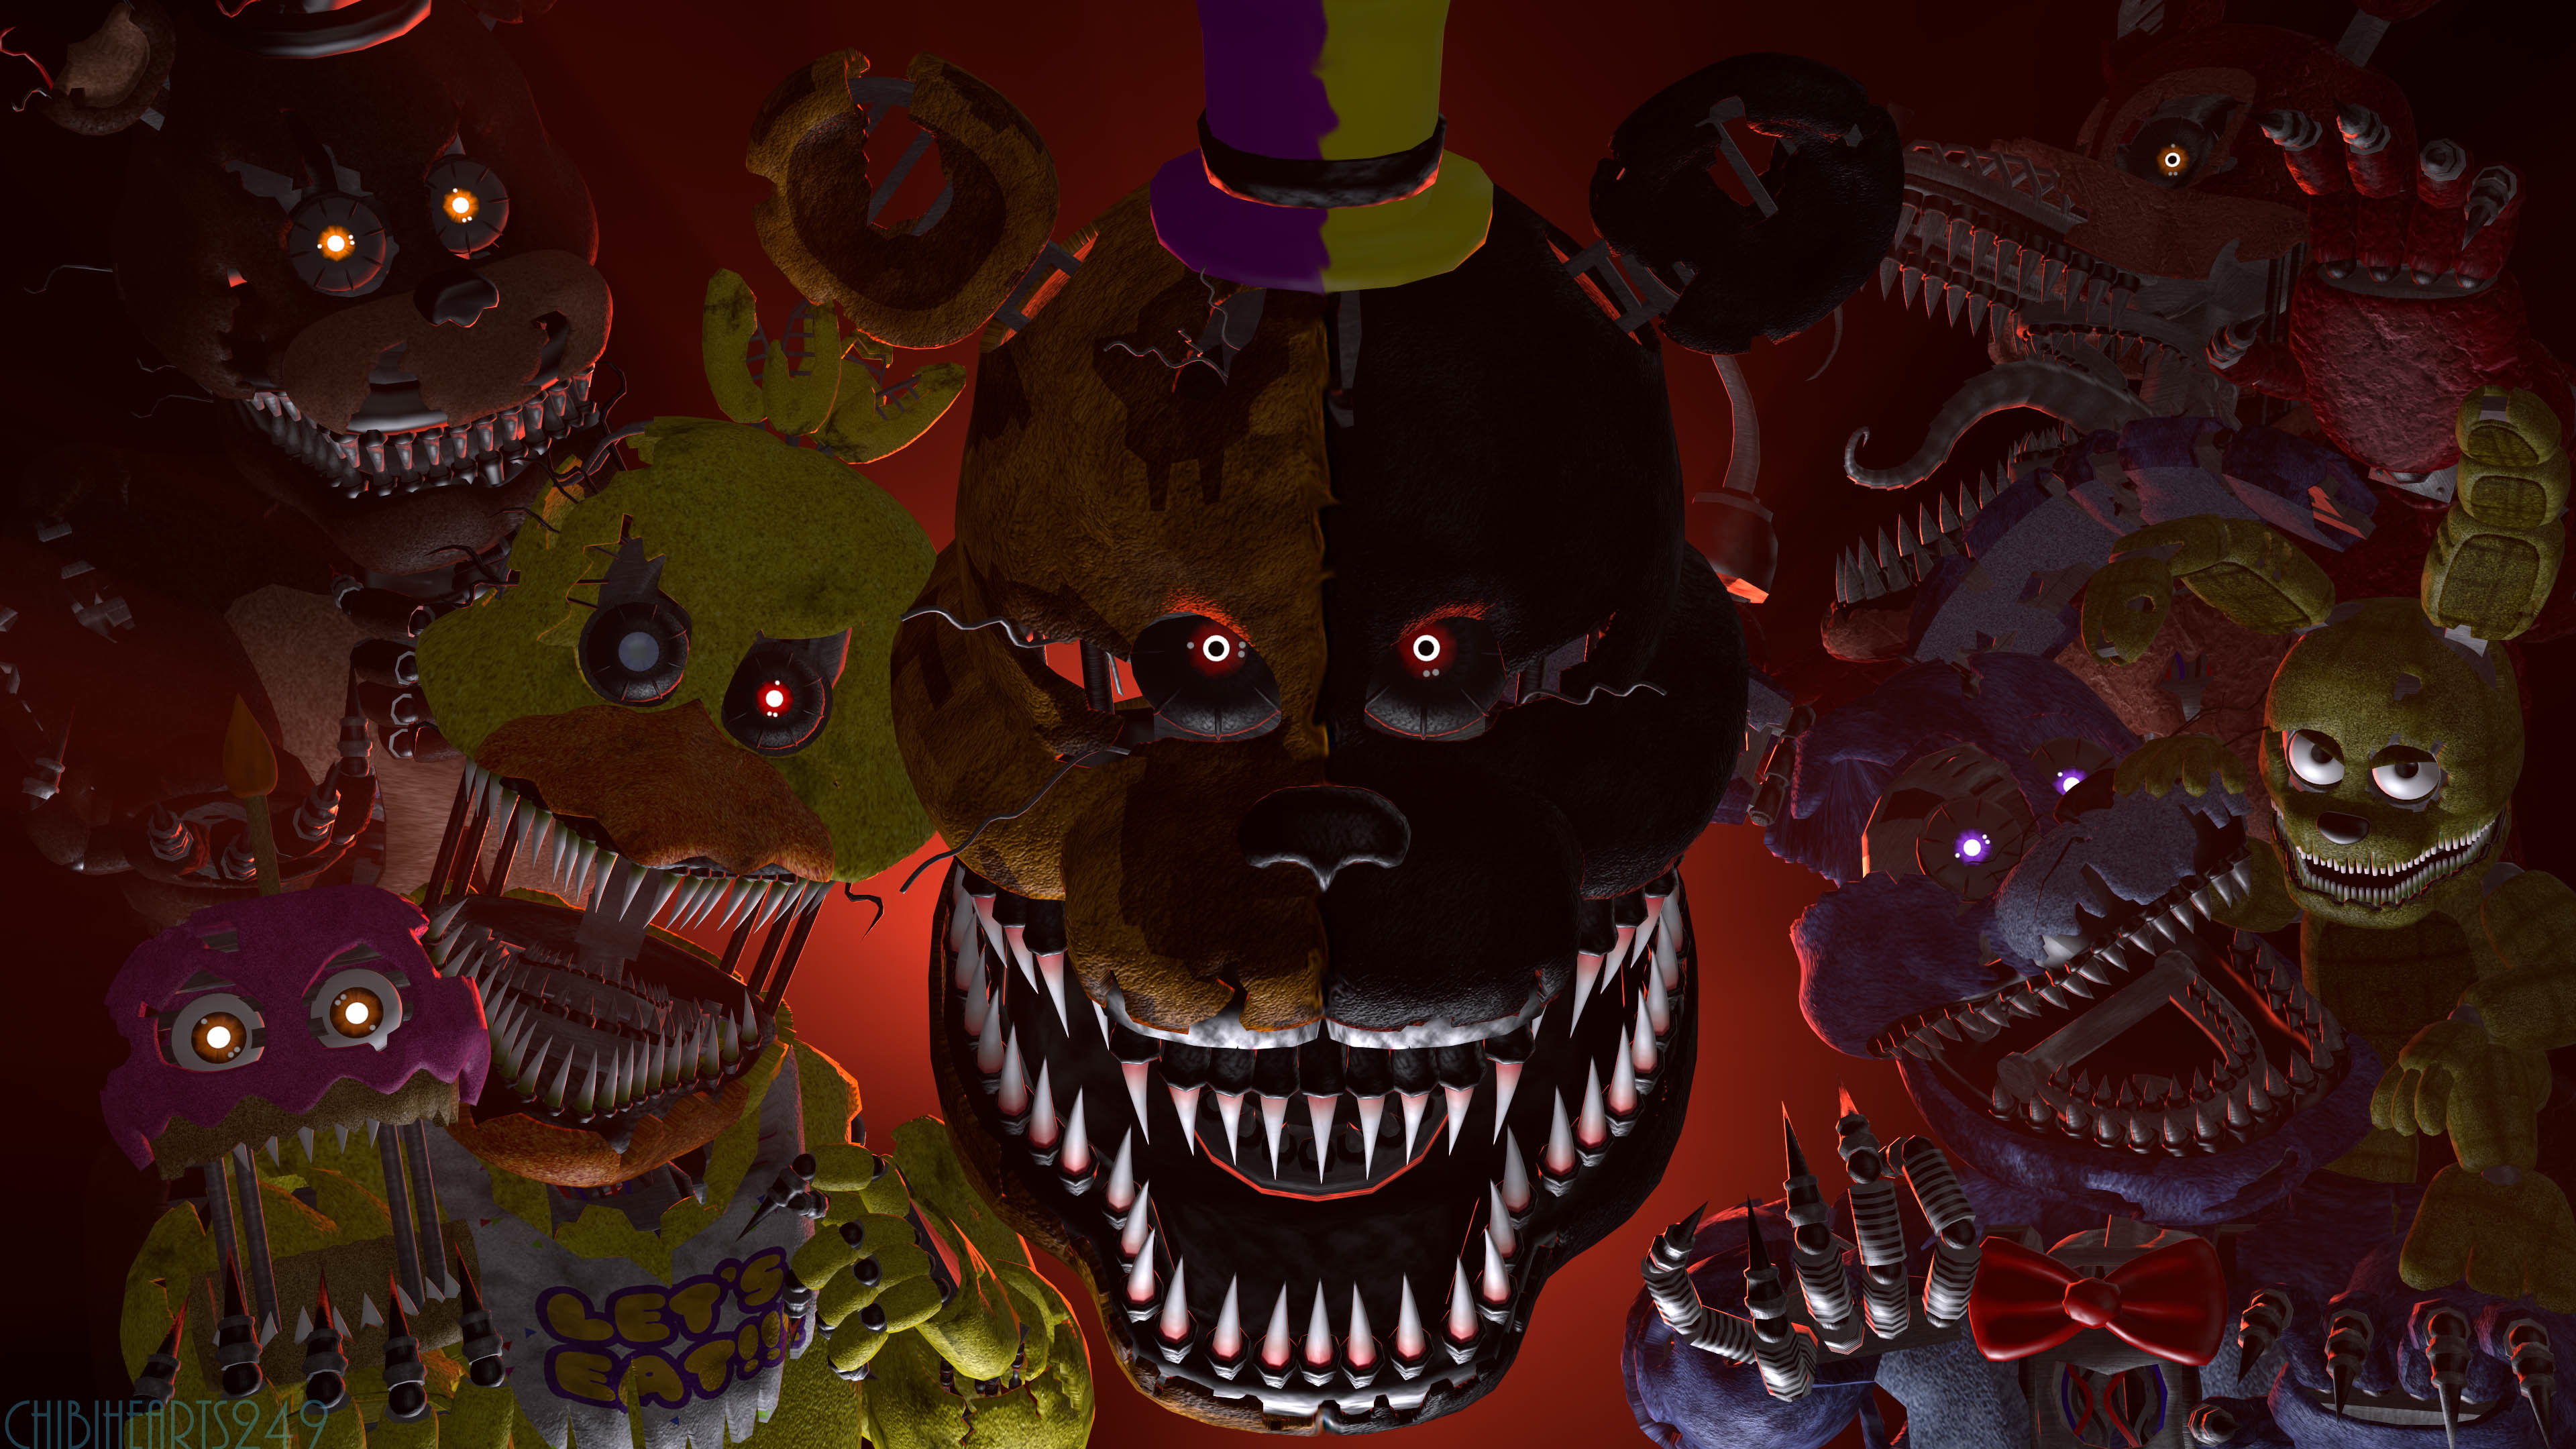 Res: 3840x2160, fnaf spoopy sfm poster